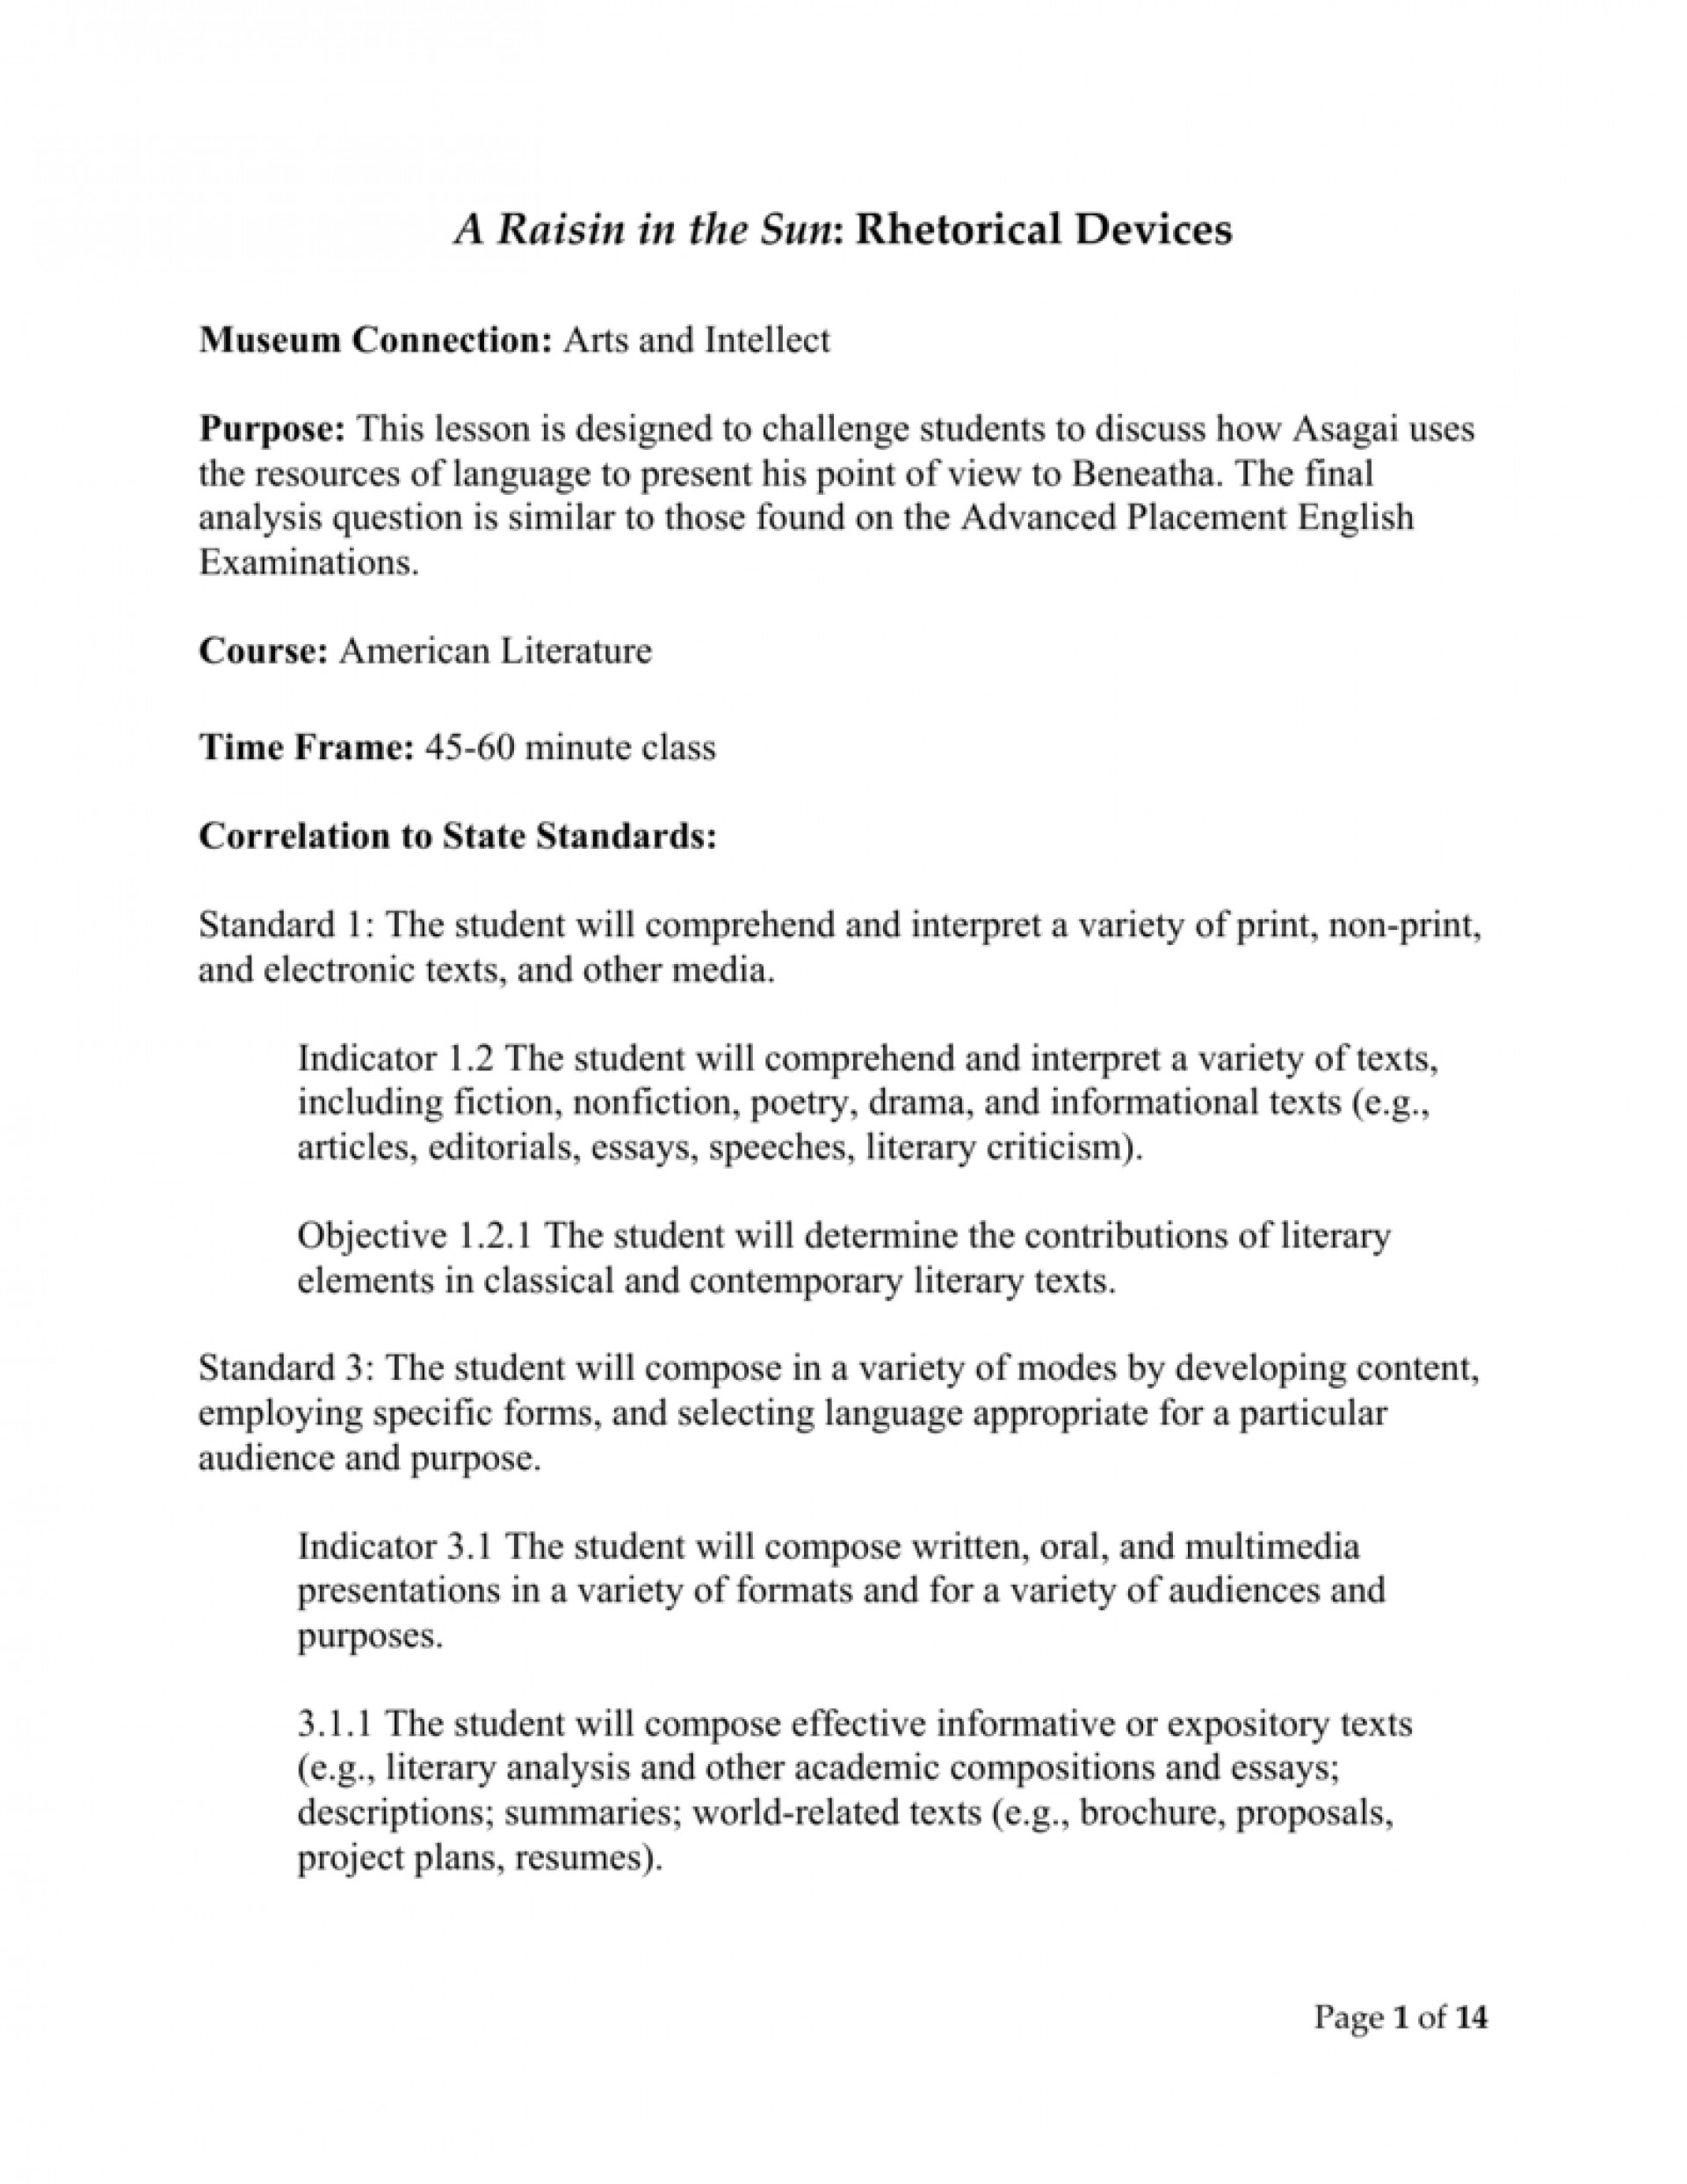 006 008718601 1 Essay Example Why Do Authors Use Rhetorical Devices In Frightening Essays Quizlet Brainly 1920